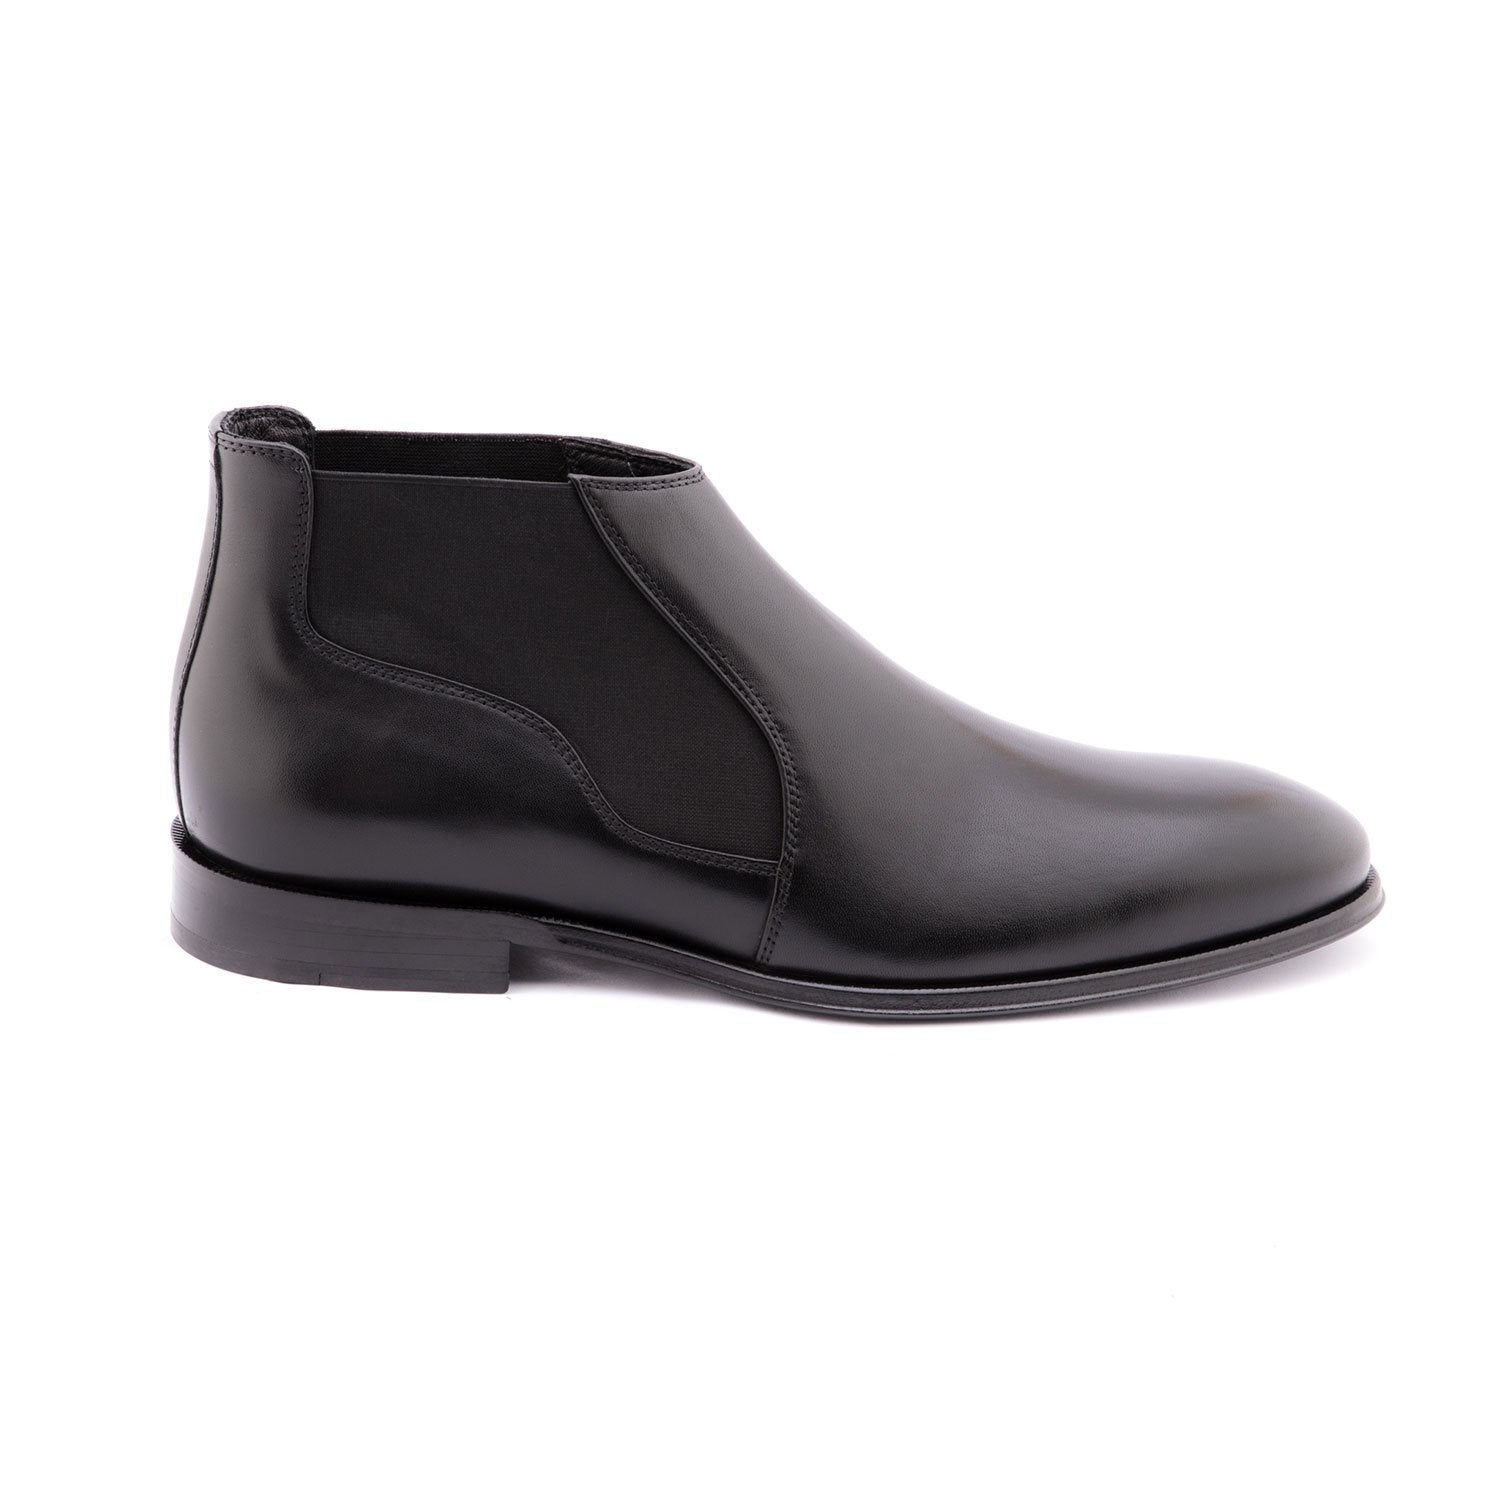 Black Leather Chelsea Boots 80120-BK